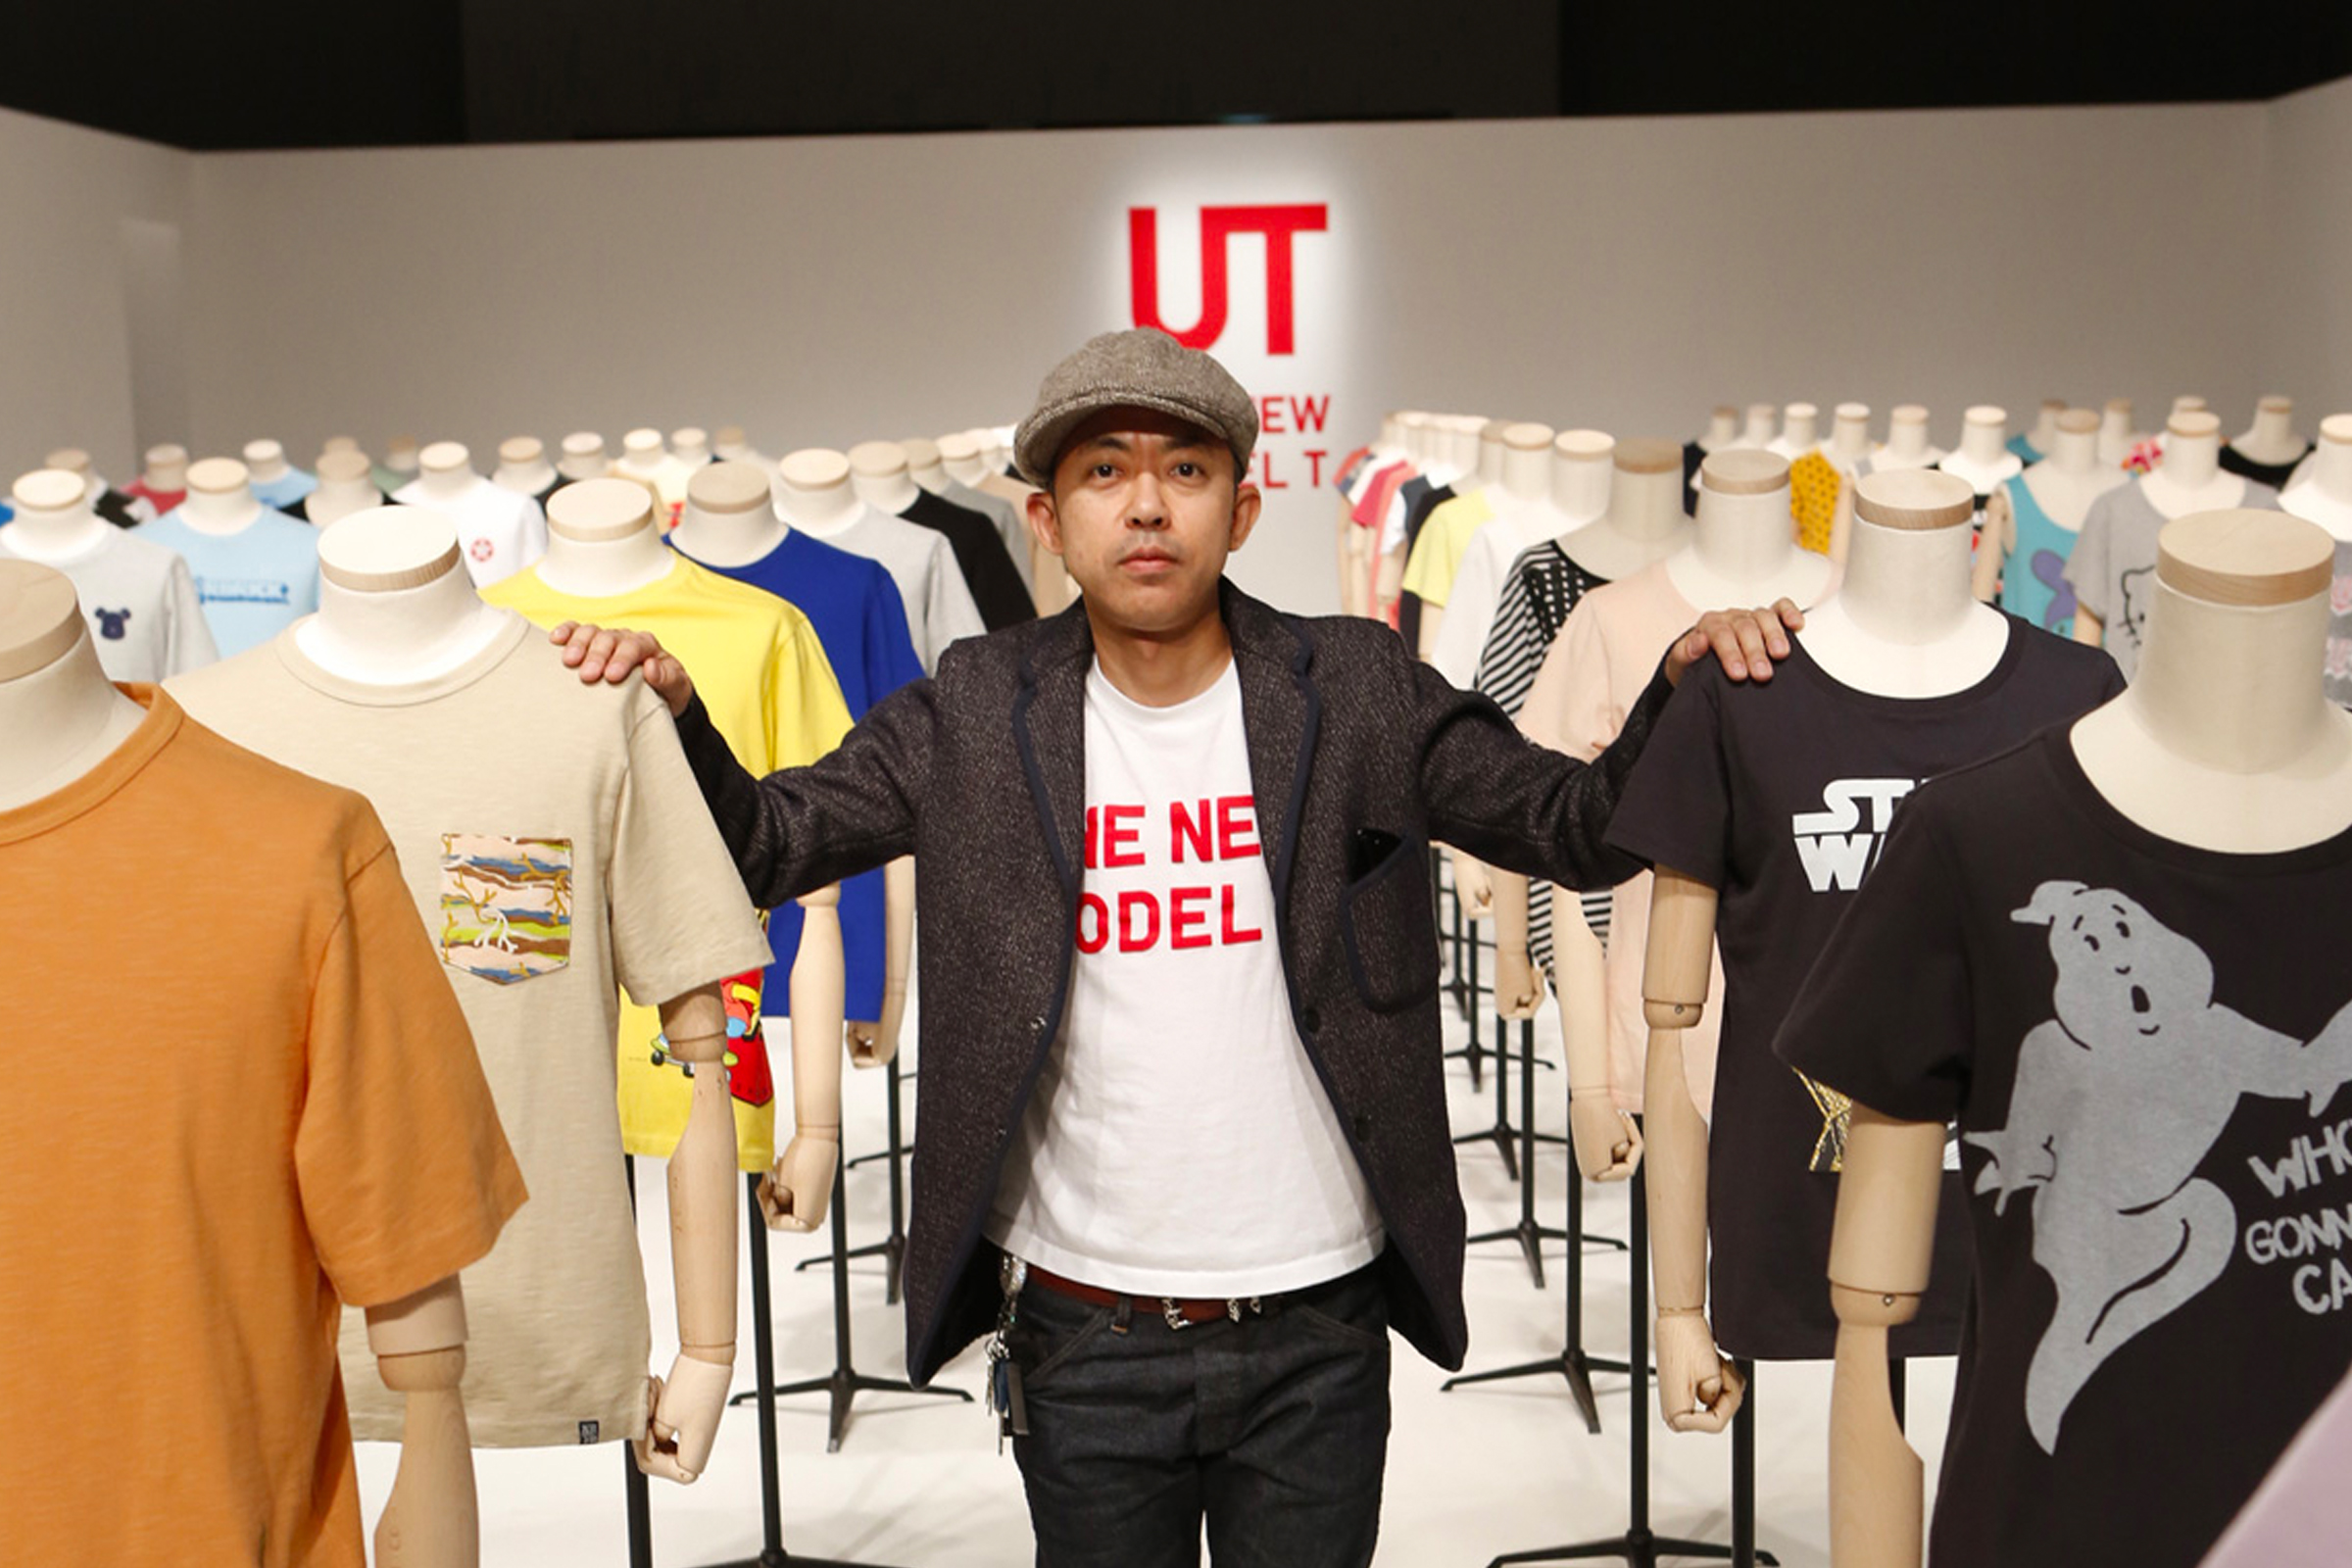 81a1ae14a Simple Made Better: A Selection of Notable Uniqlo Collabs - Best ...